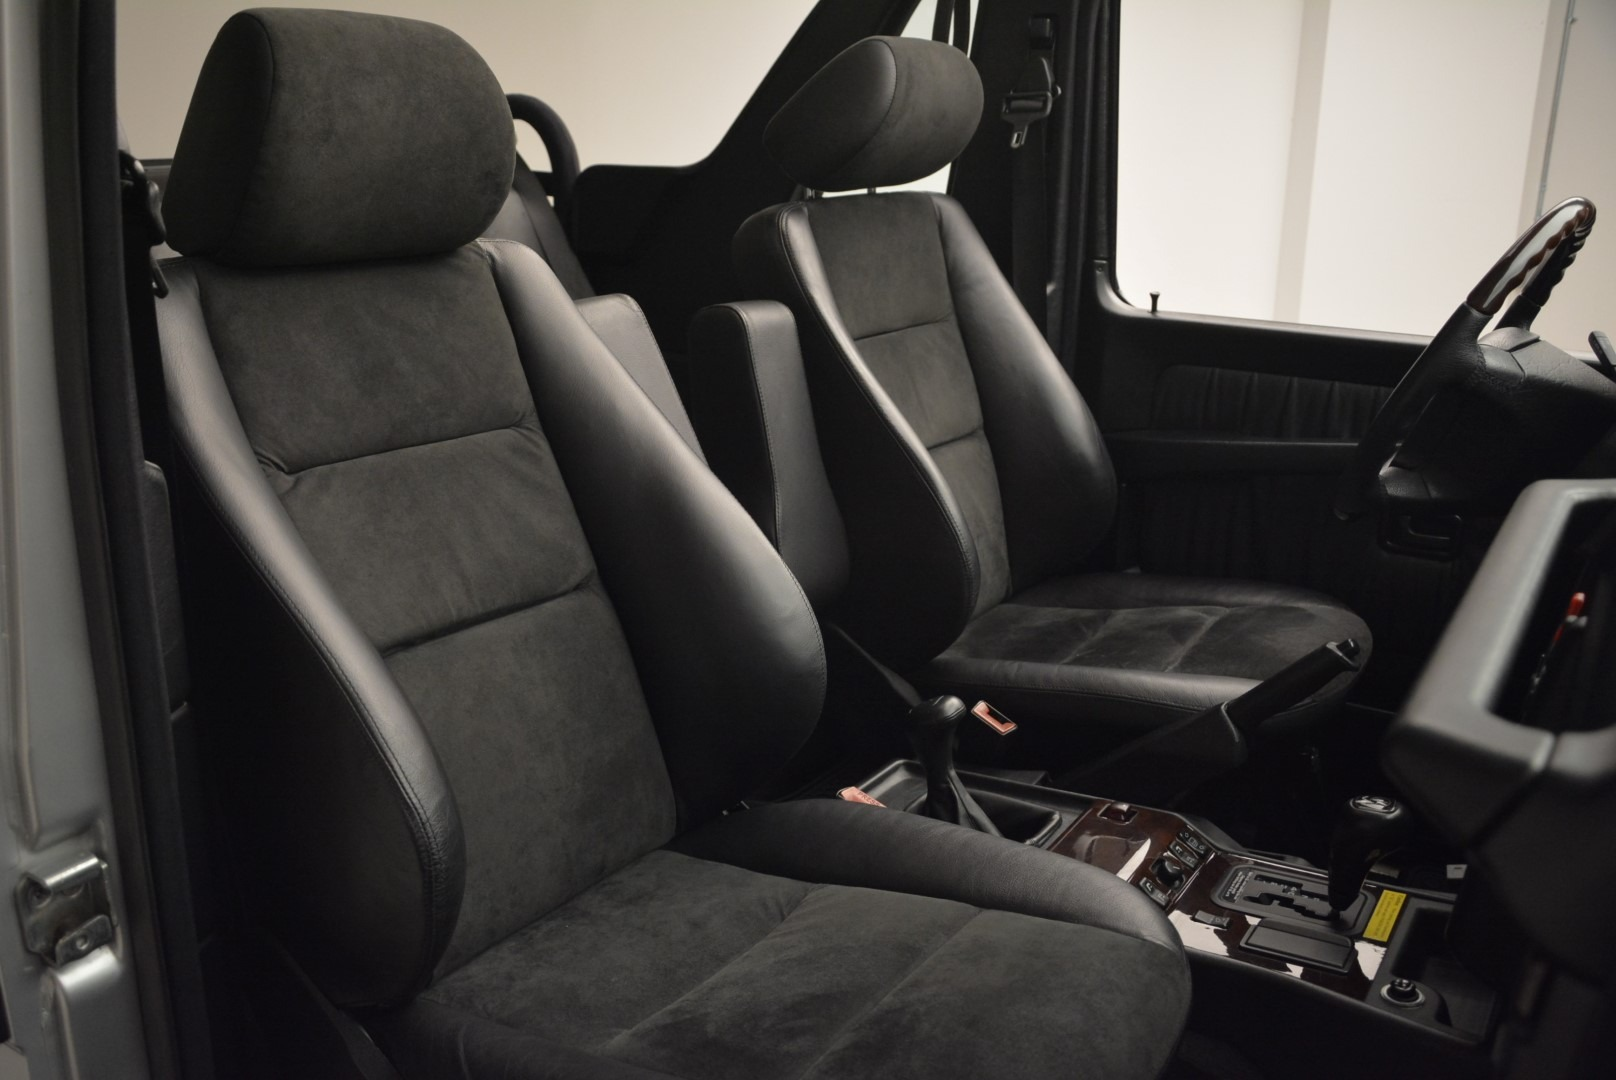 Used 2000 Mercedes-Benz G500 RENNTech  For Sale In Greenwich, CT 2184_p18